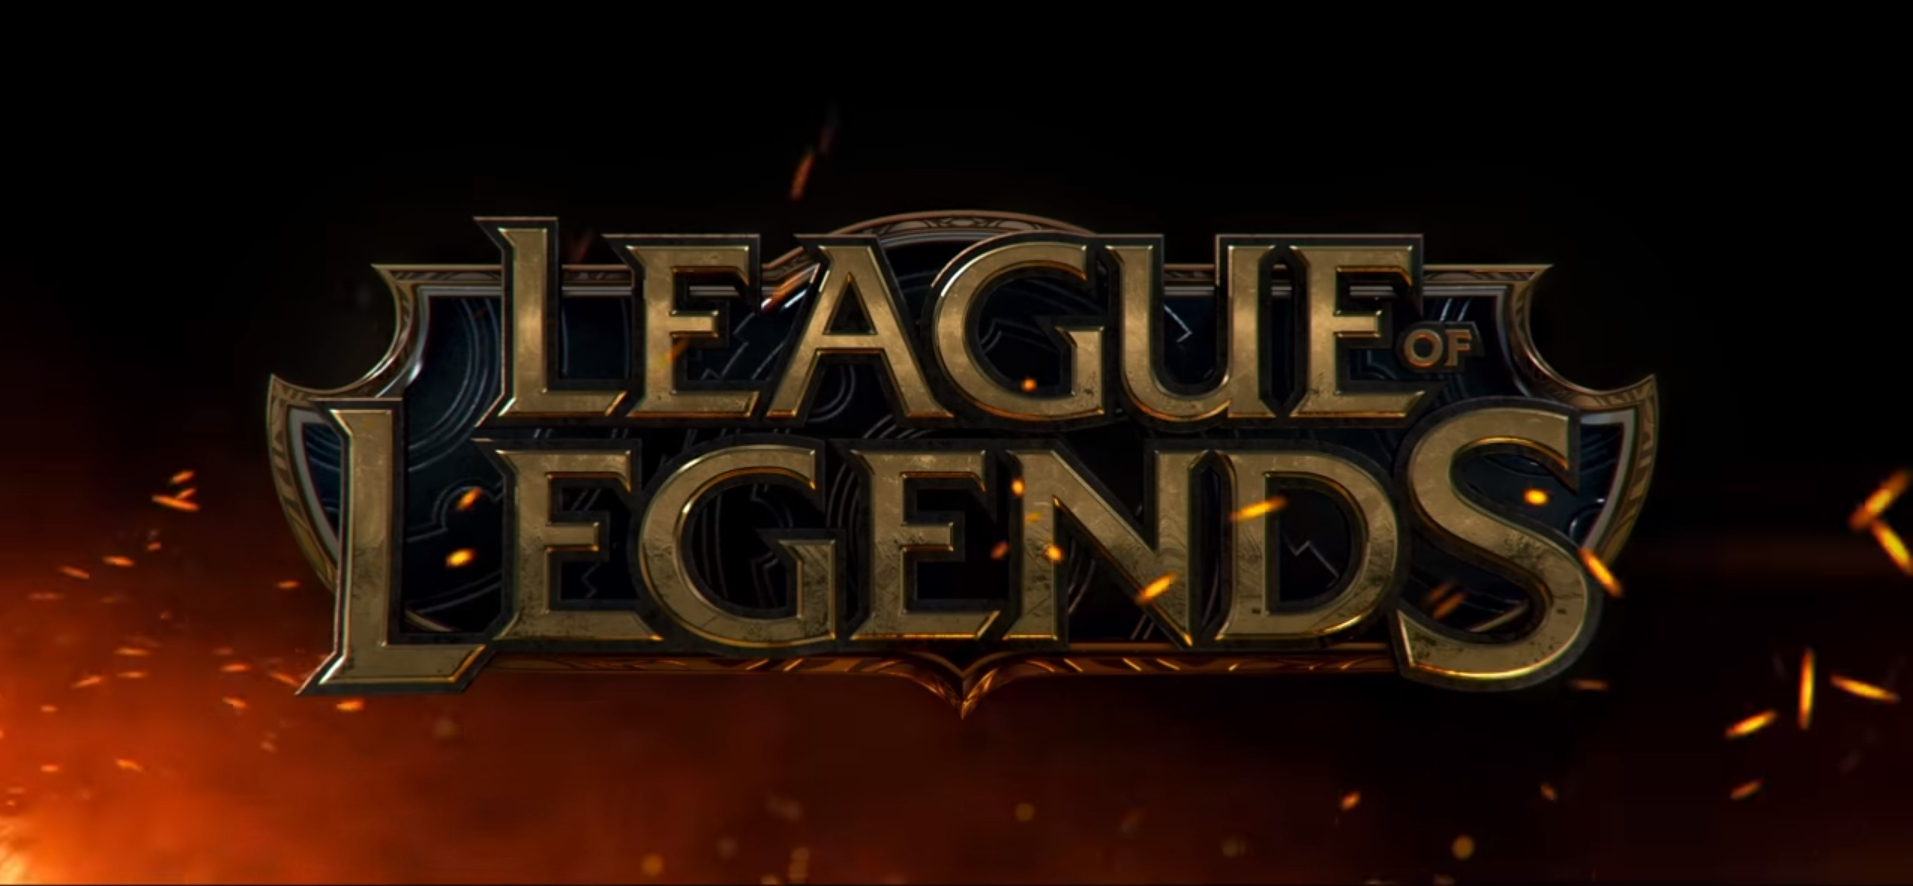 Turkish Professional League of Legends Team Galatasaray Esports Has Been Banned from the TCL